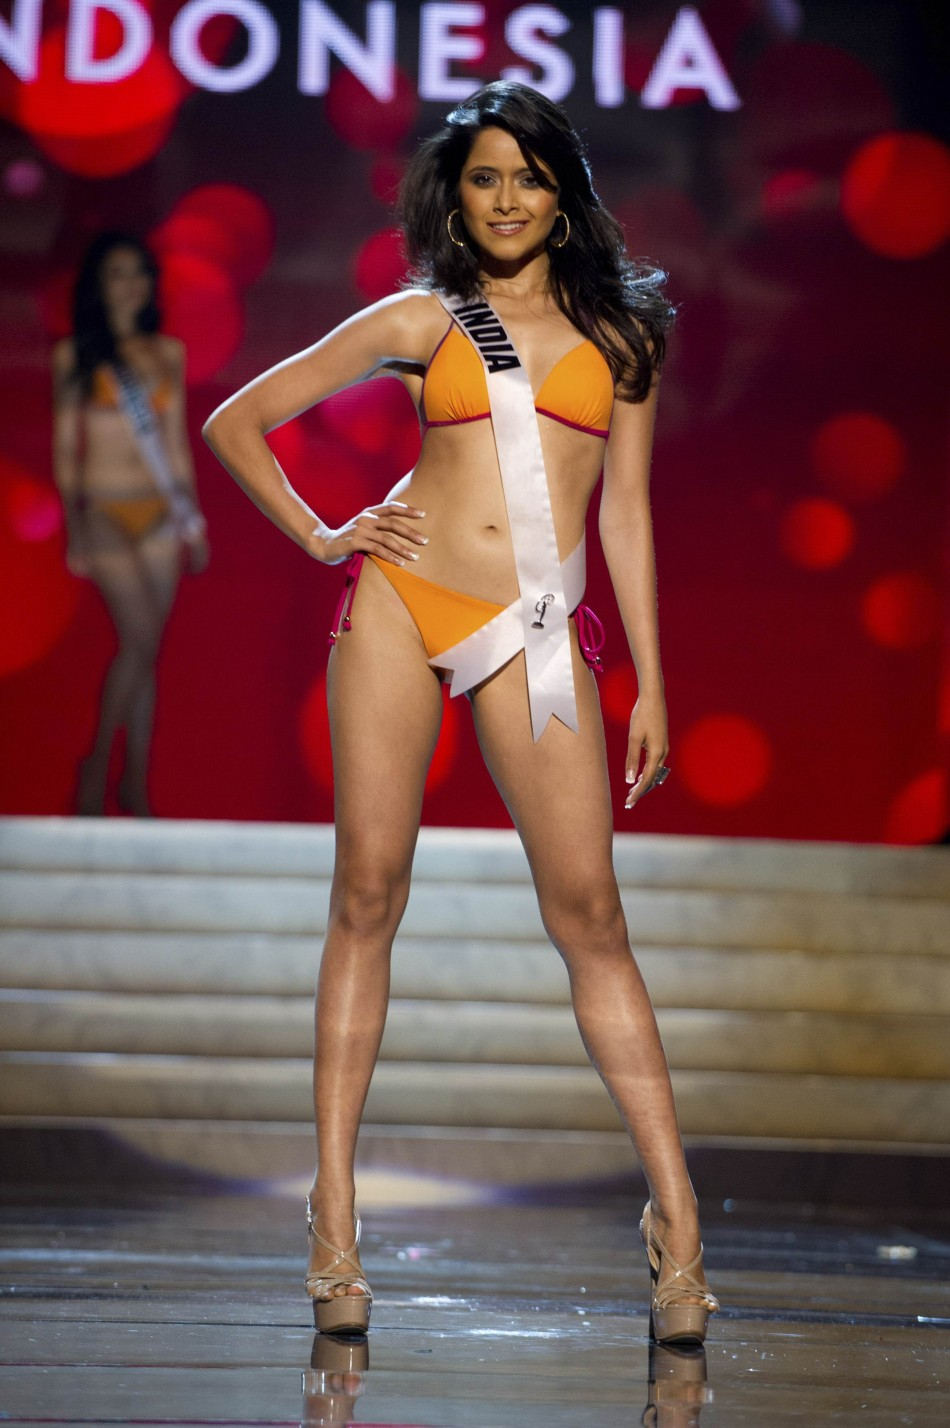 Miss India Ruhi Singh at the Swimsuit Competition of the 2012 Miss Universe Presentation Show at PH Live in Las Vegas